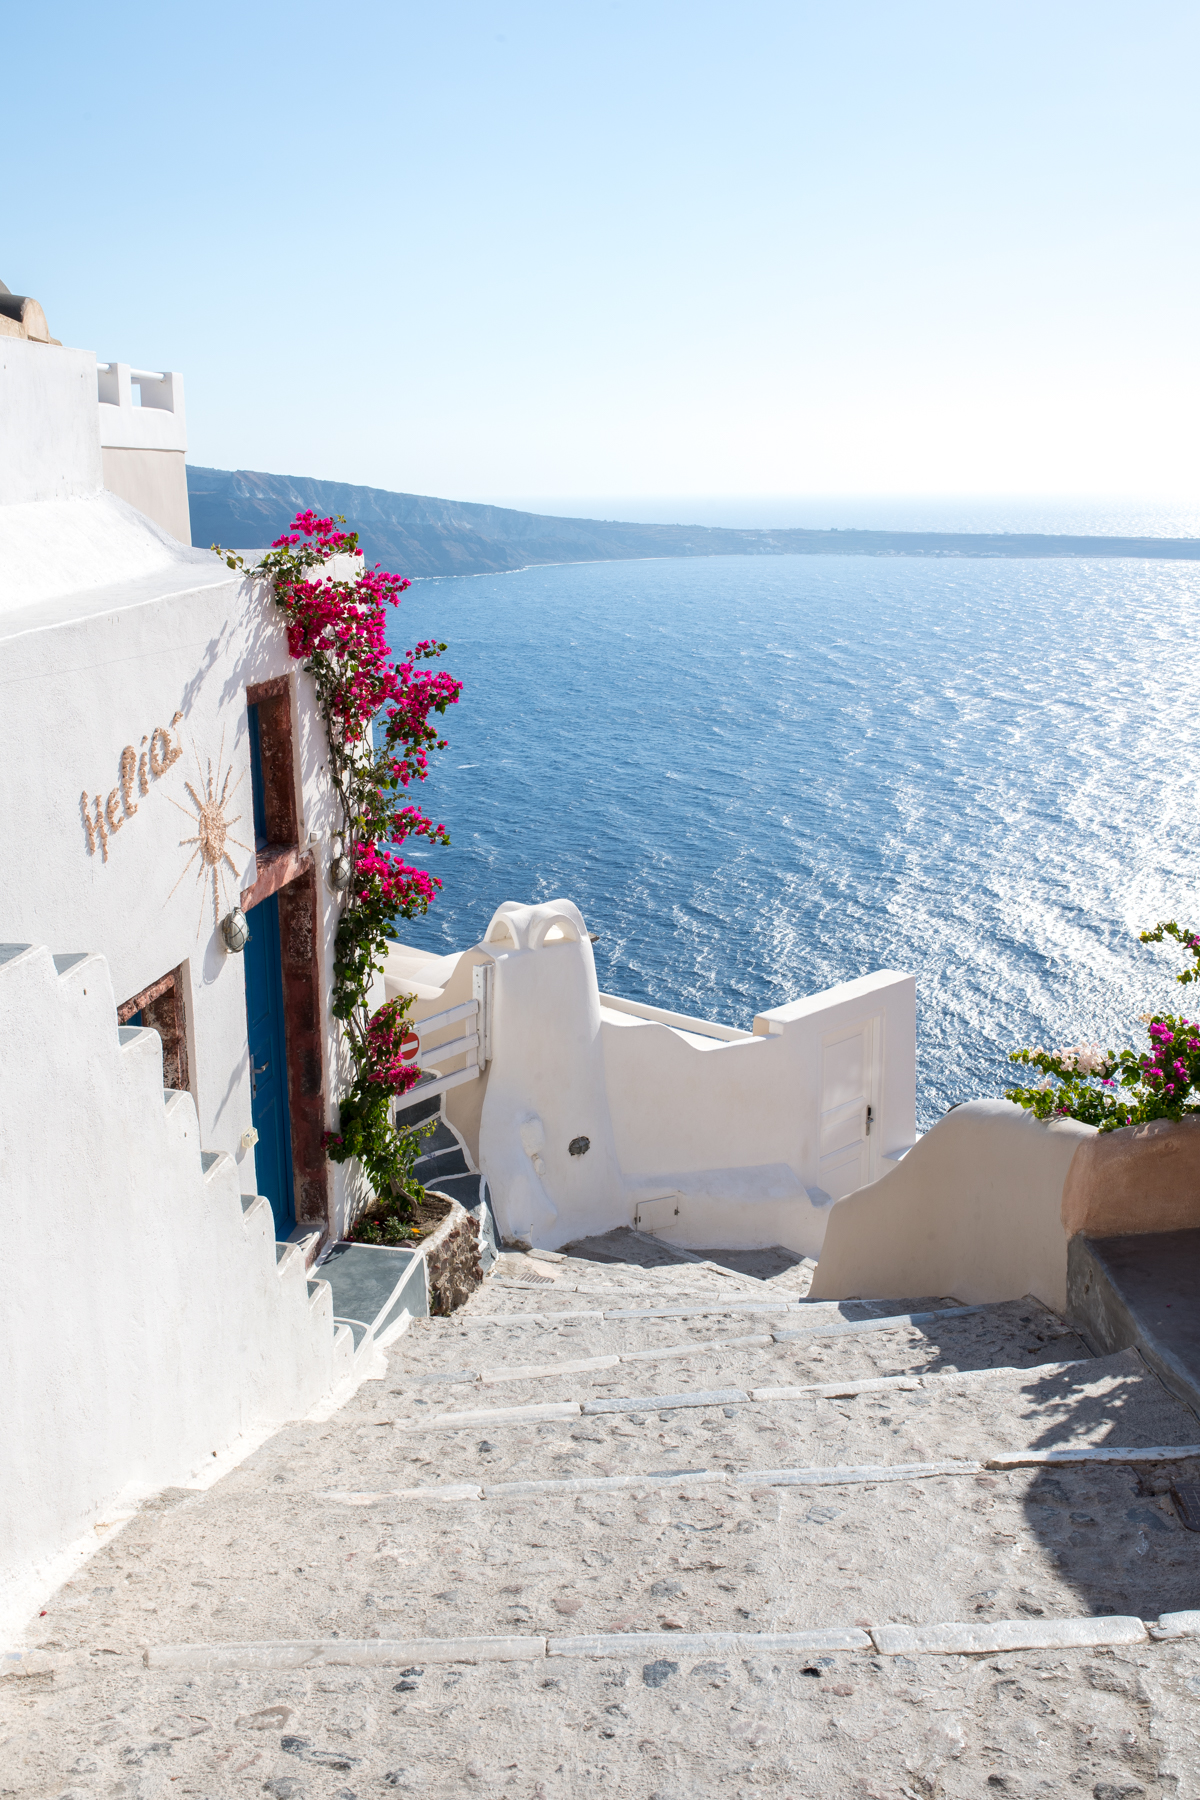 Stacie Flinner Travel Guide Santorini Greece-52.jpg